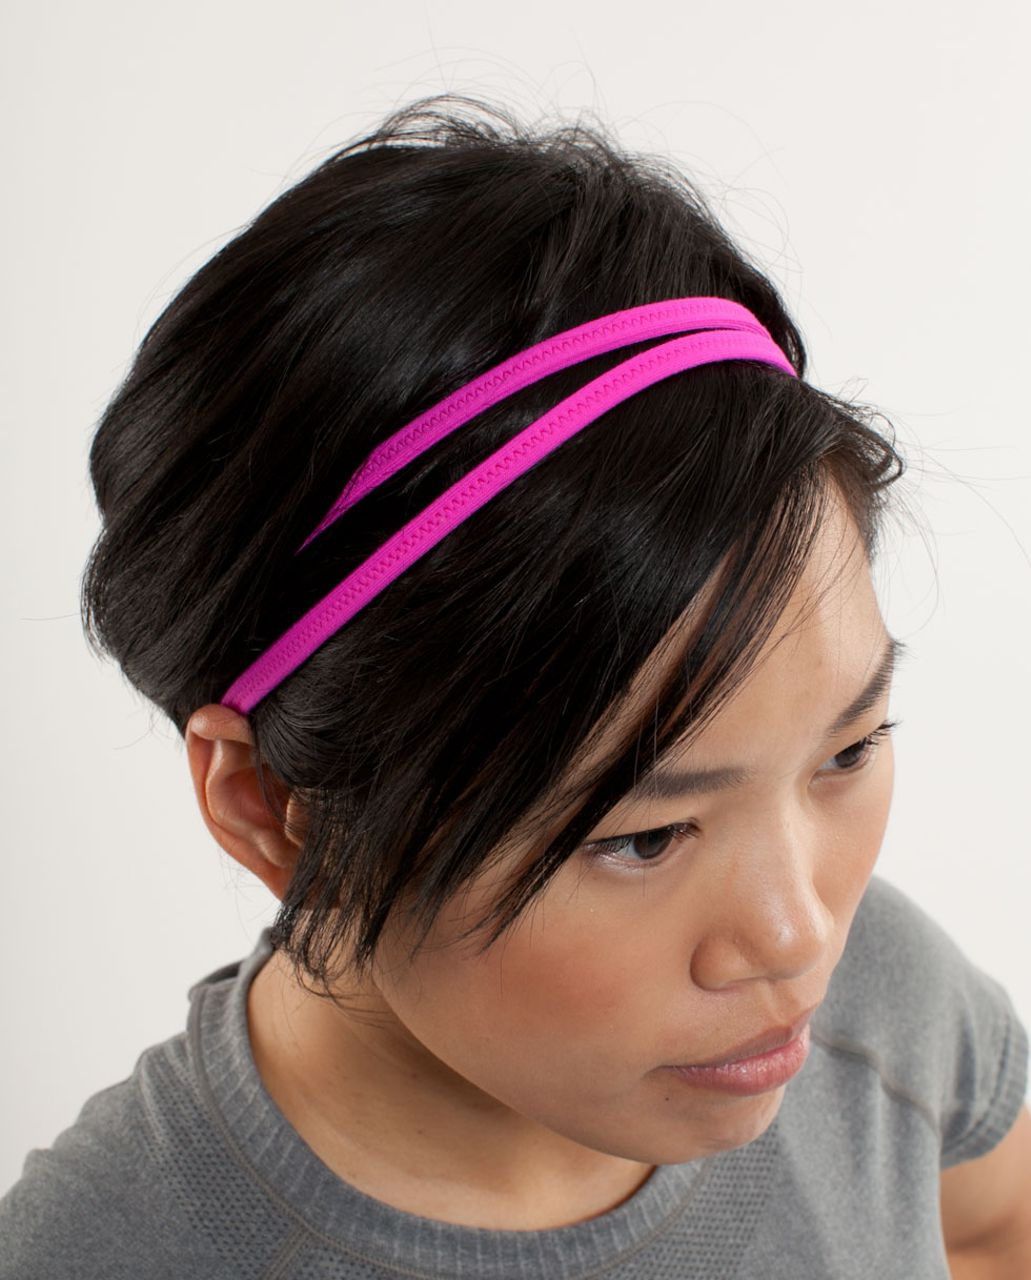 Lululemon DANCE! Headband - Paris Pink